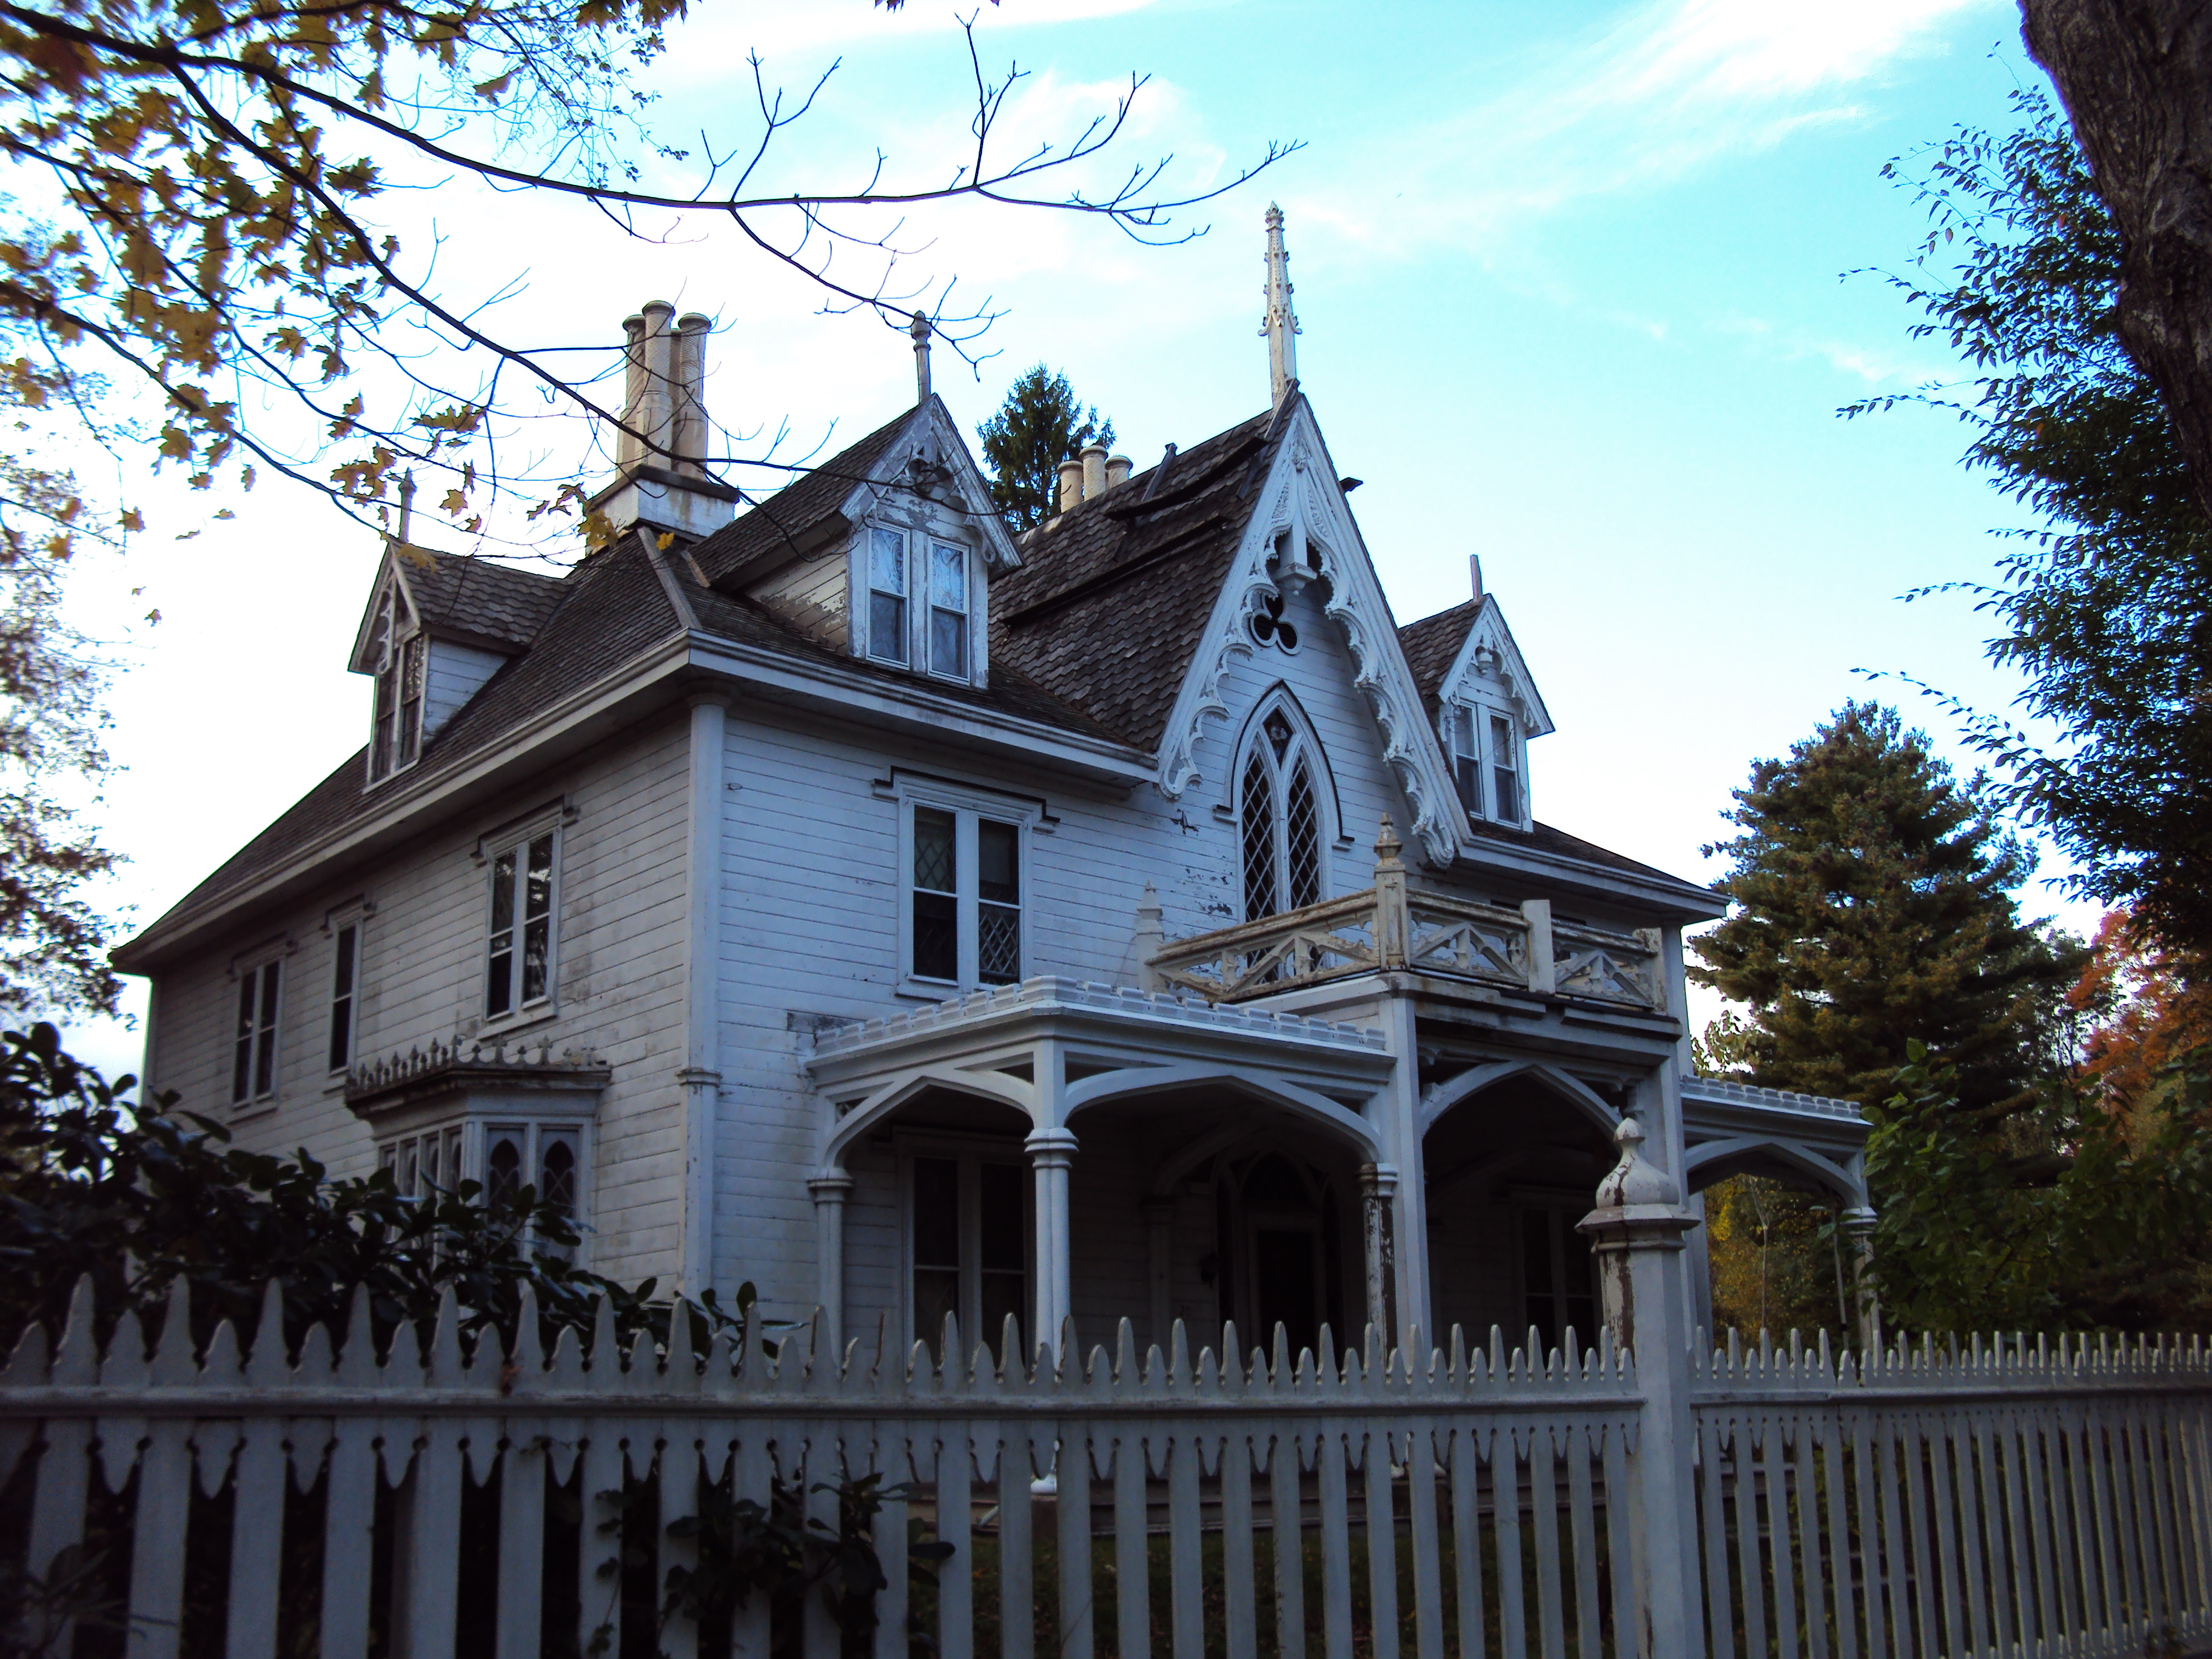 Haunted House or great fixer-upper?